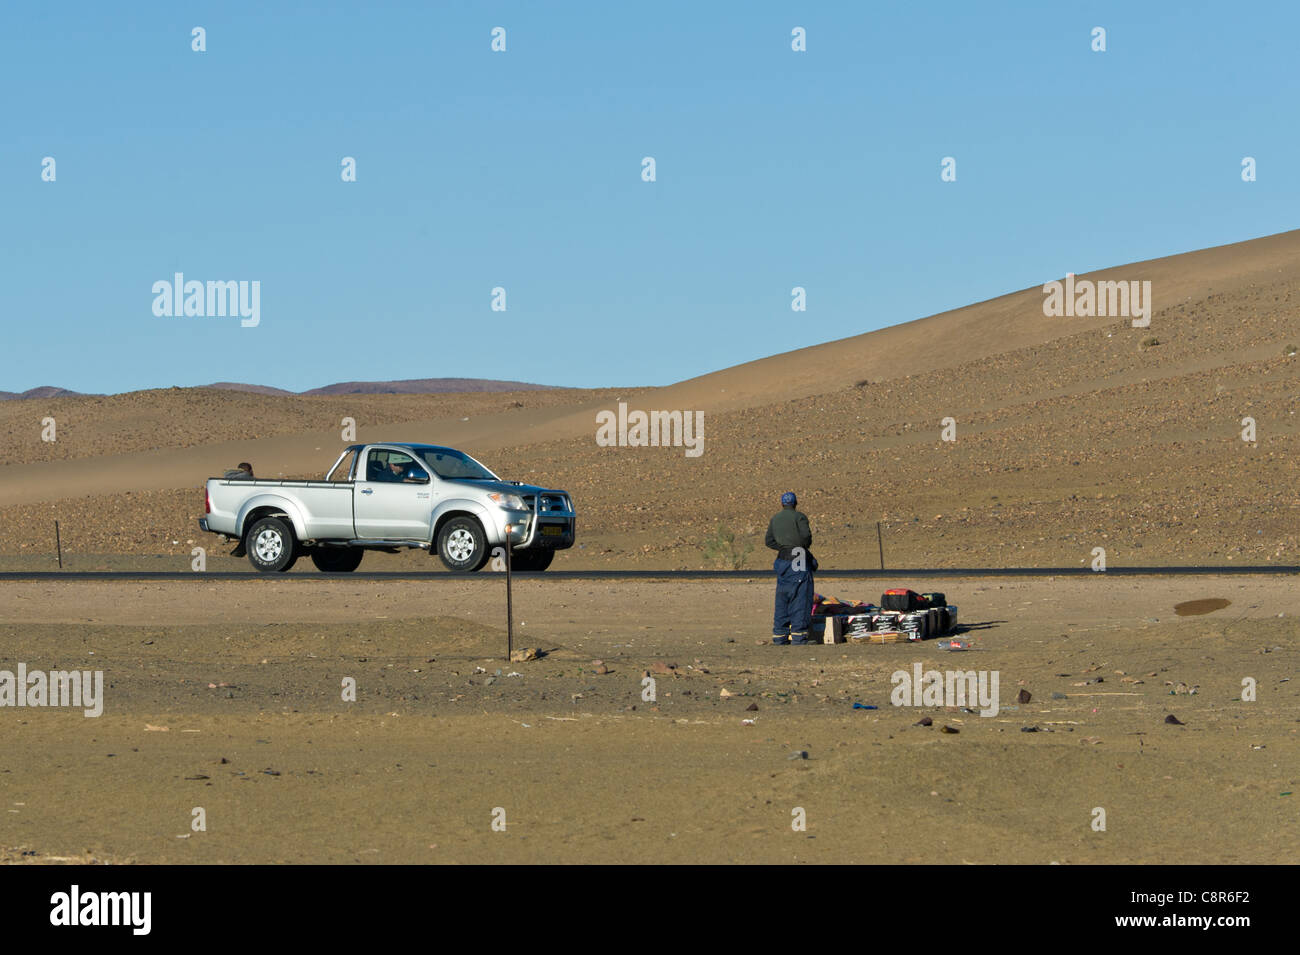 Man waiting with goods waiting for transport in Noordoewer Namibia Stock Photo